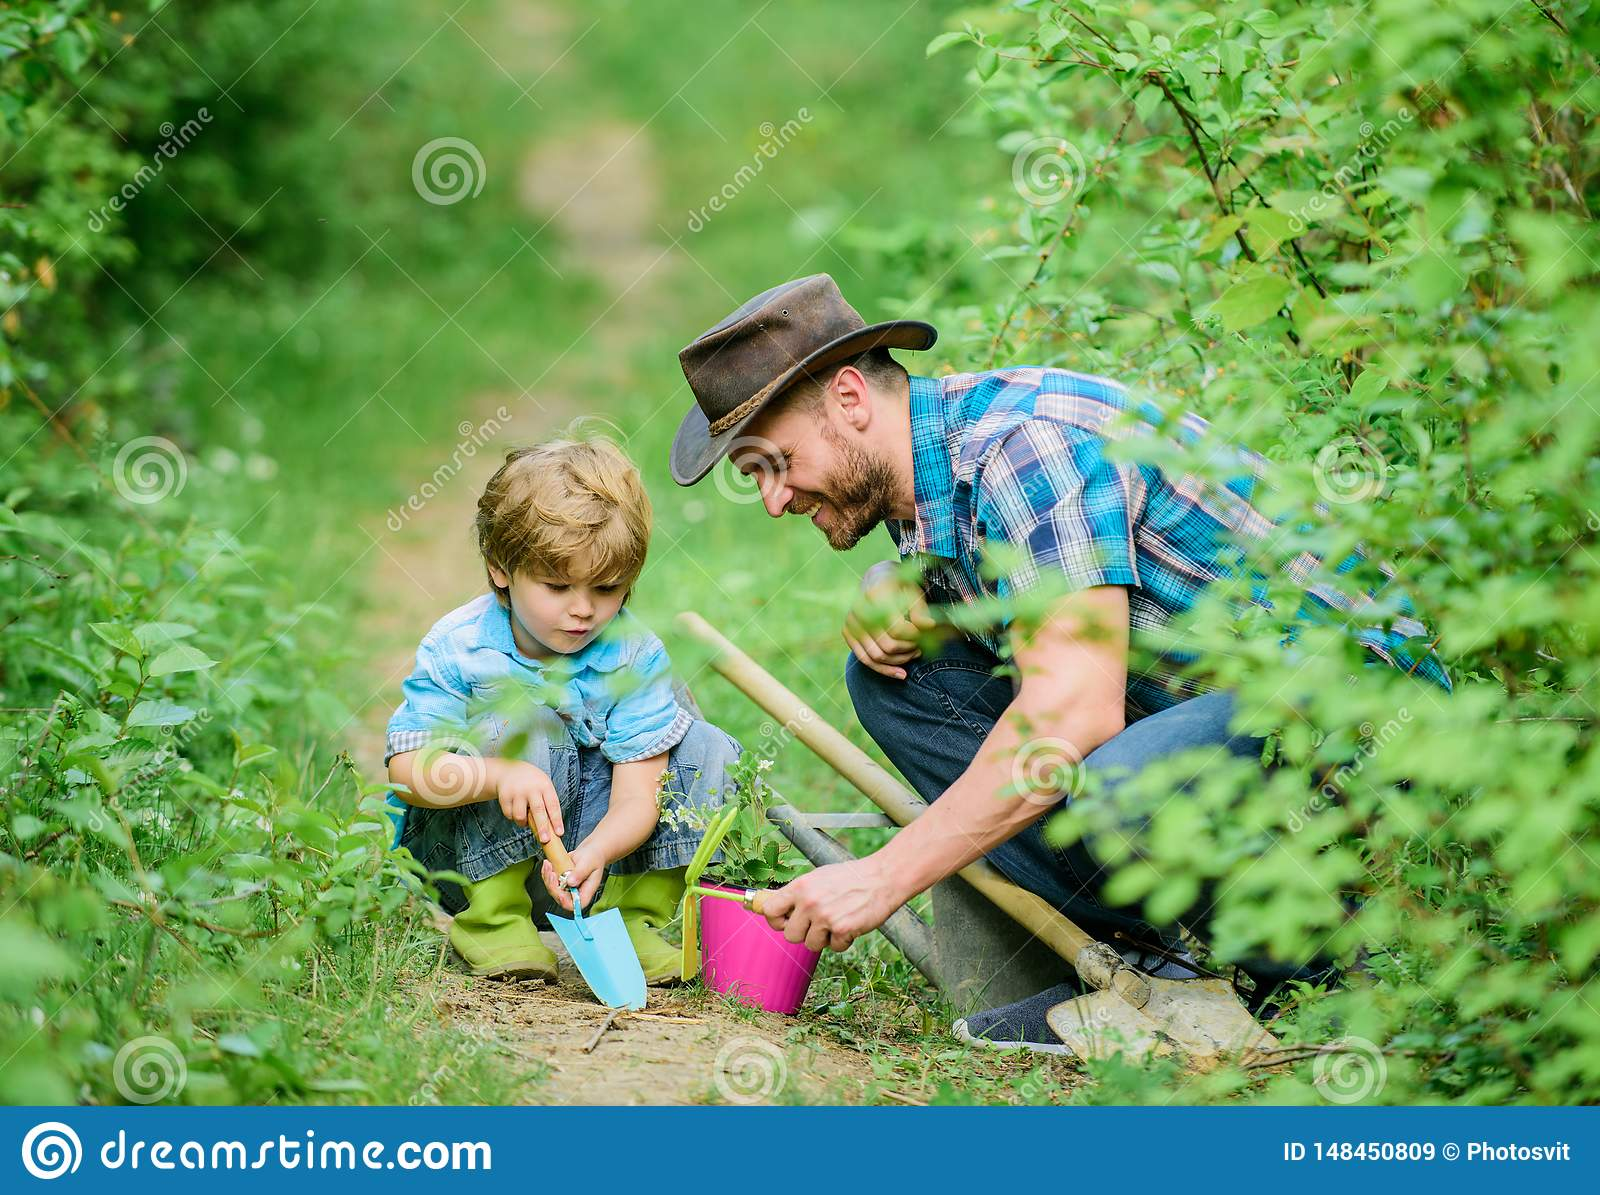 Small boy child help father in farming. Eco farm. father and son in cowboy hat on ranch. hoe, pot and shovel. Garden